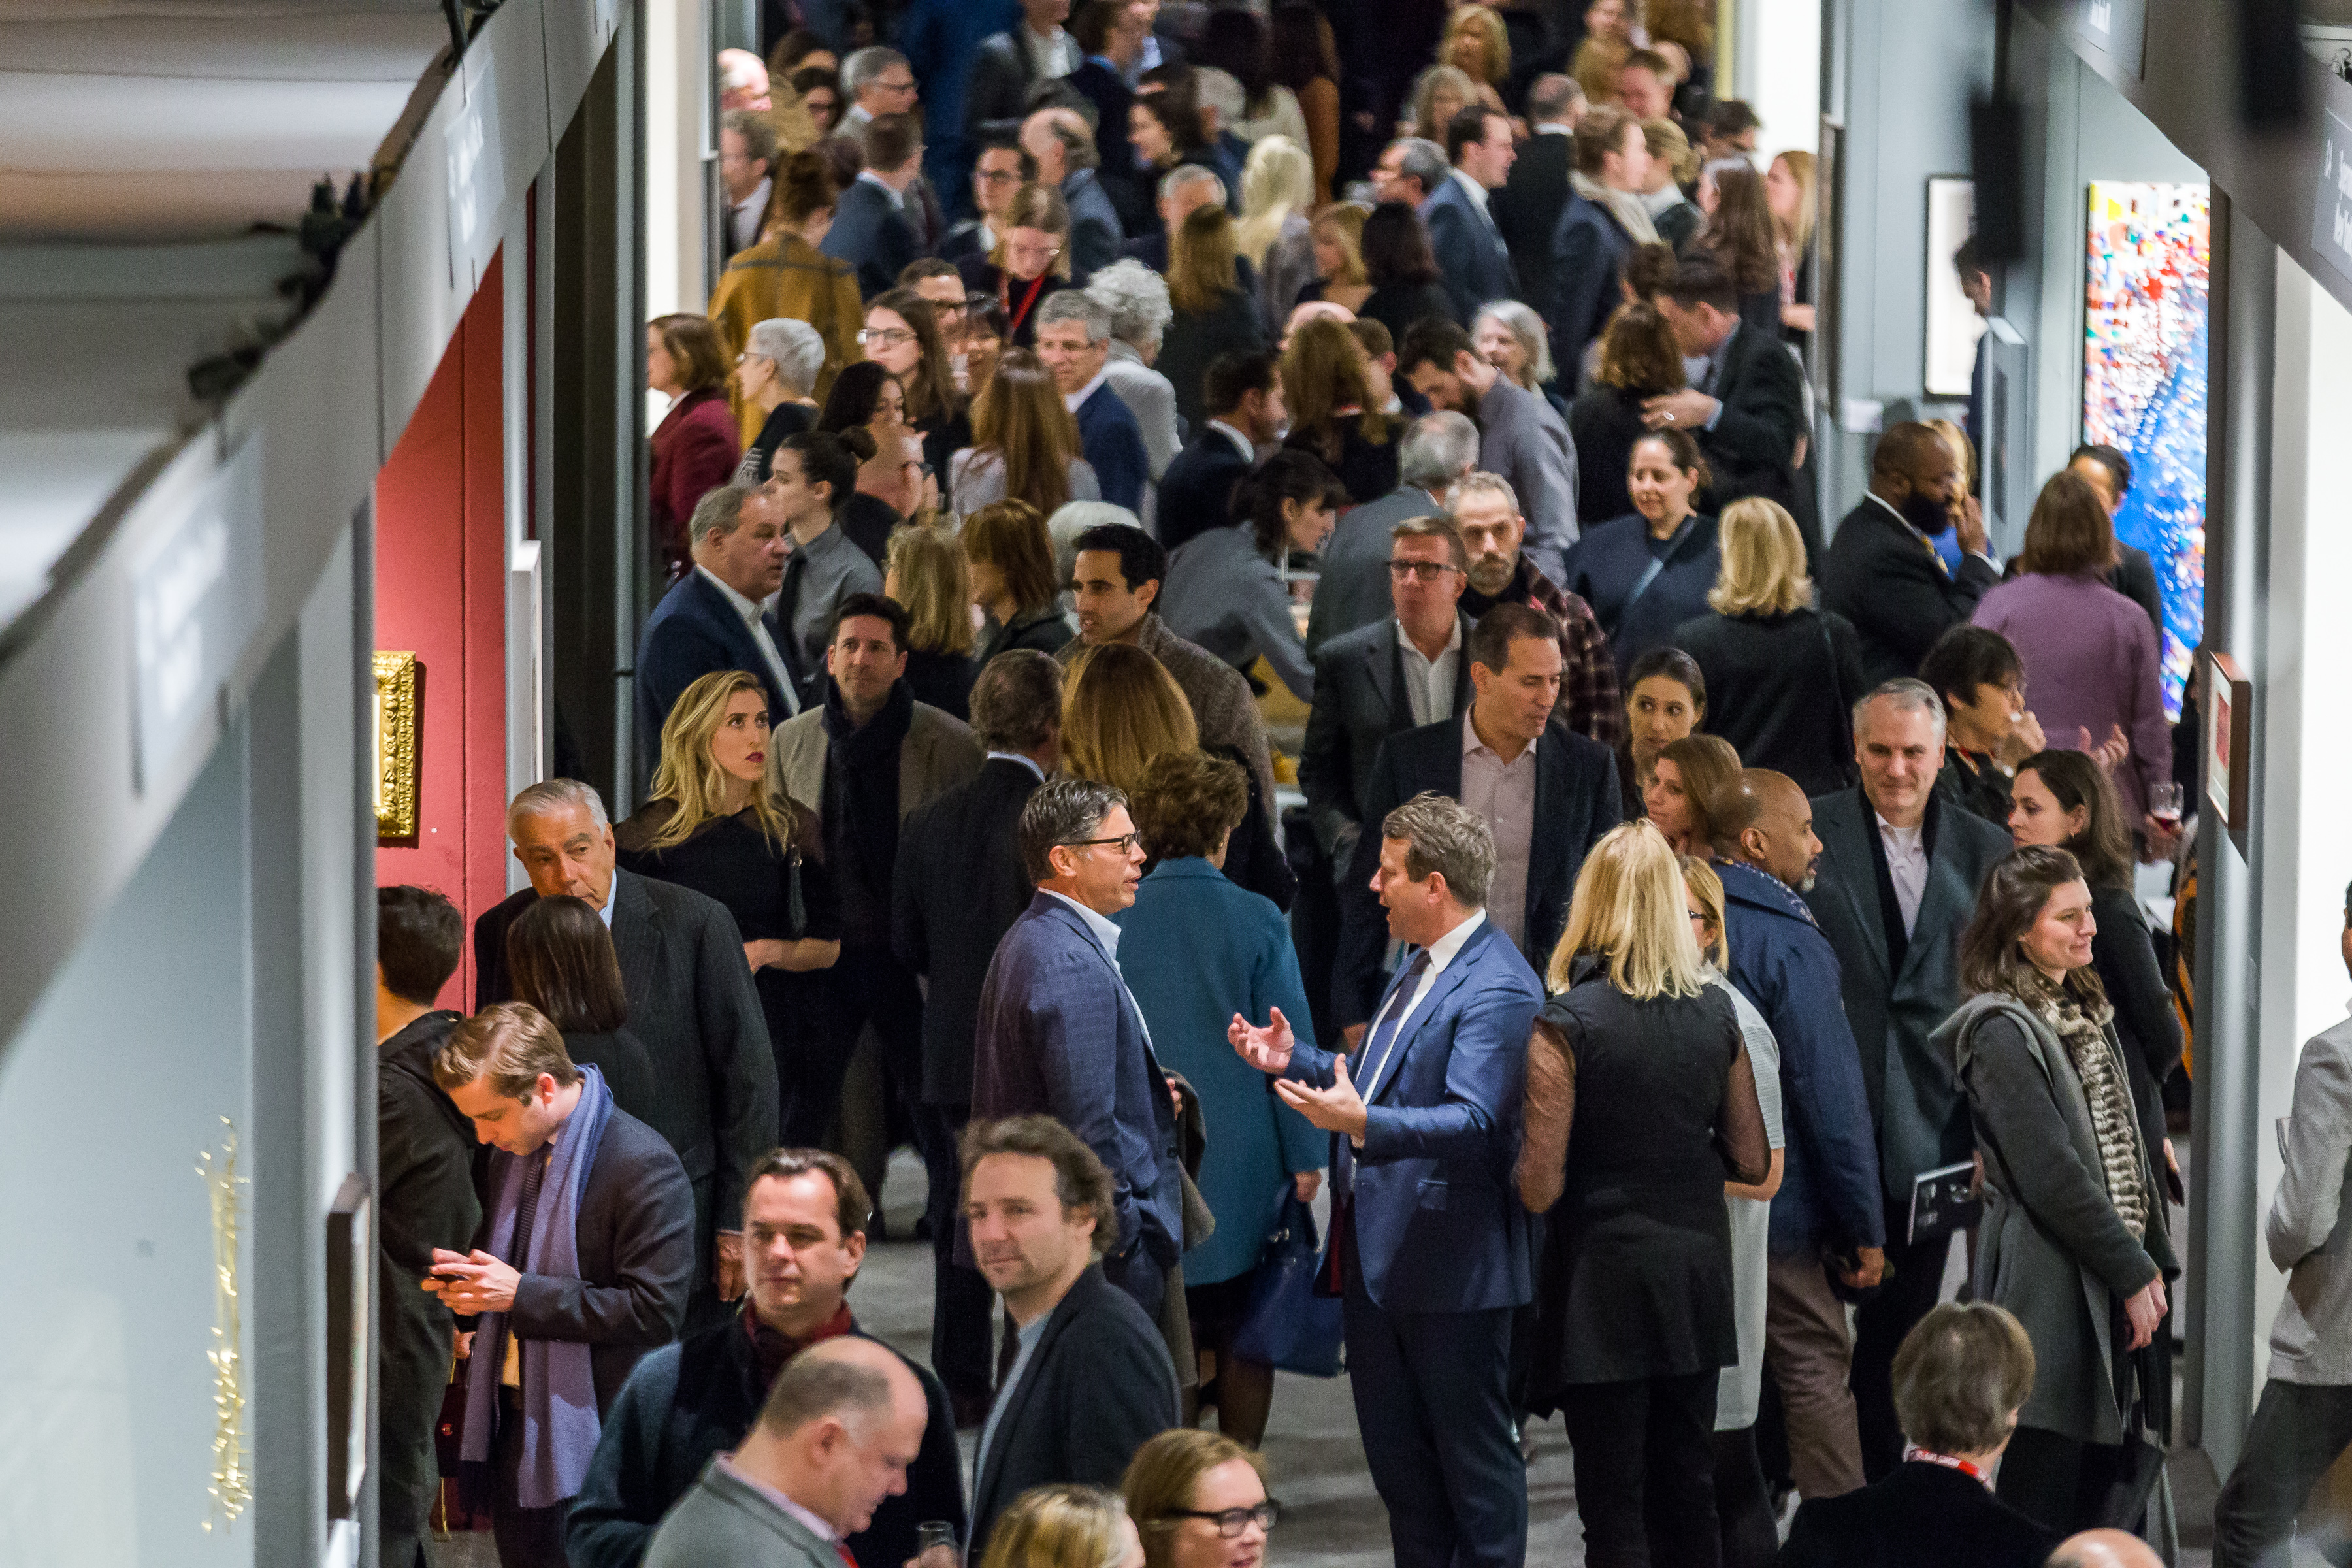 Here's the Exhibitor List for the 2019 ADAA Art Show